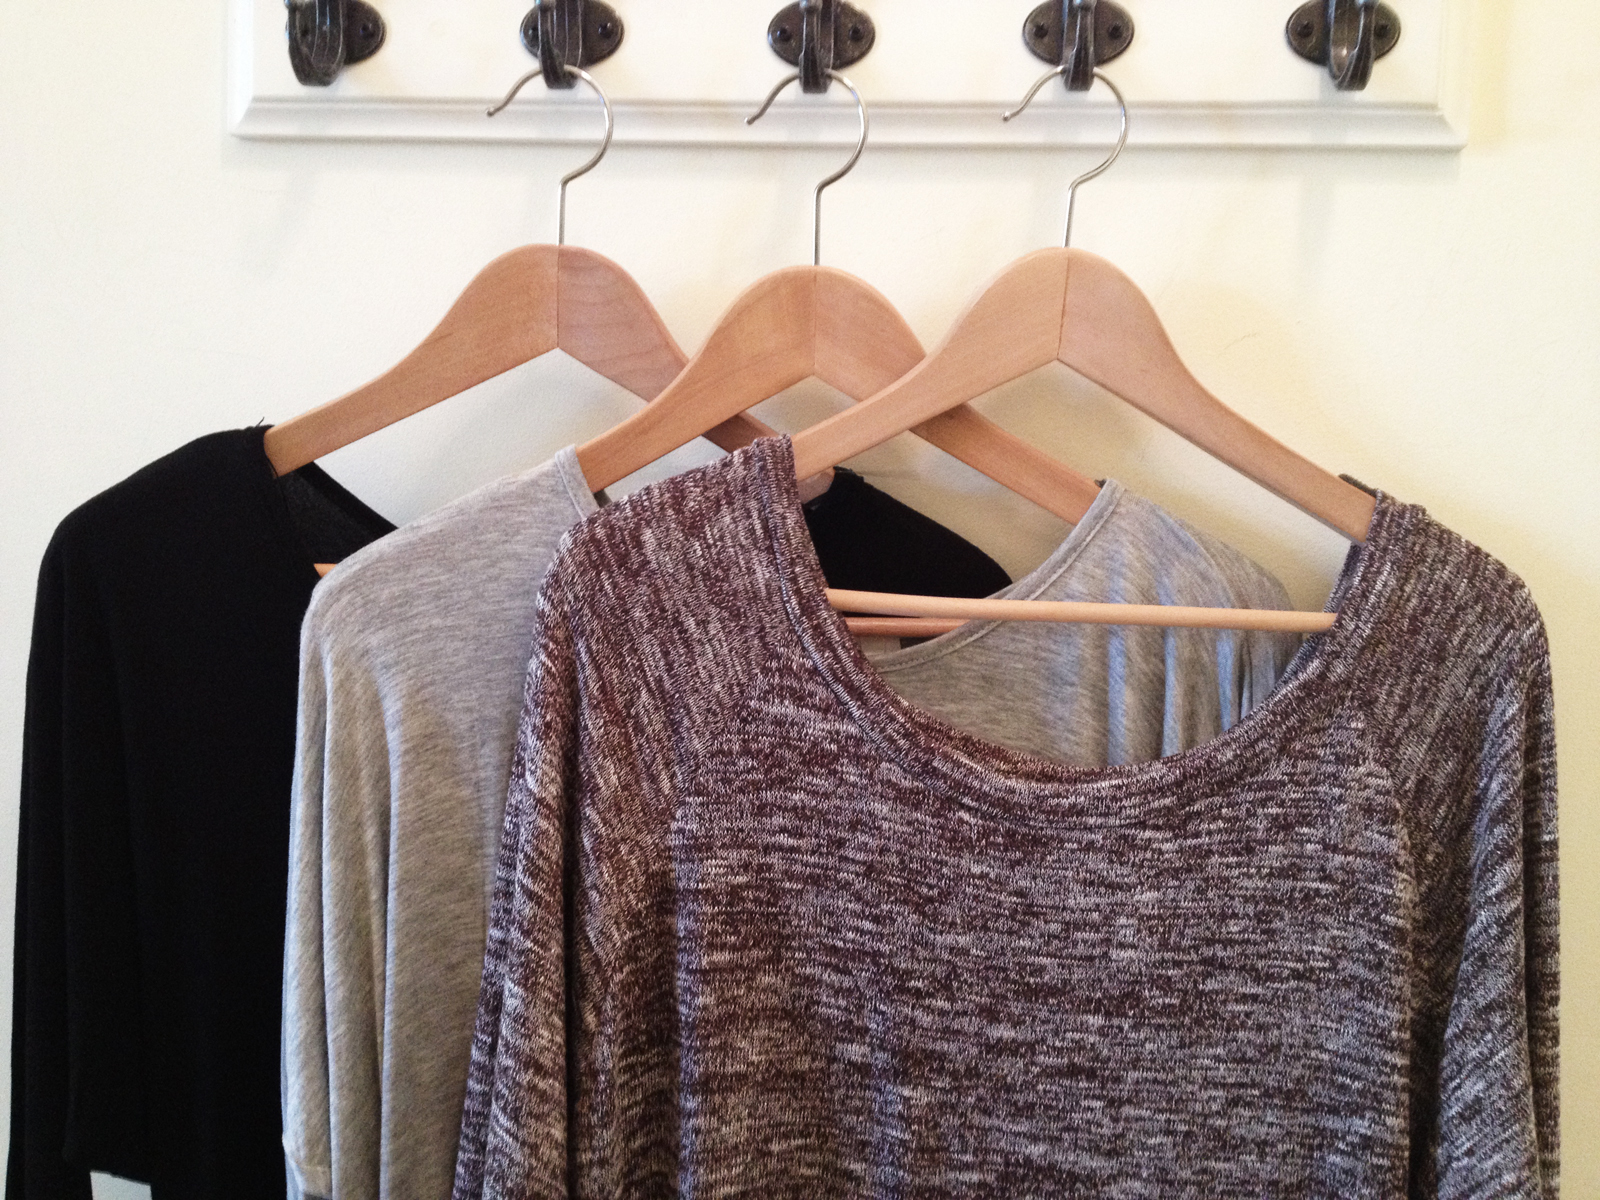 Black Dolman Sleeve Knit Dress, Heather Gray Tunic, and Heather Brown Knit Top.